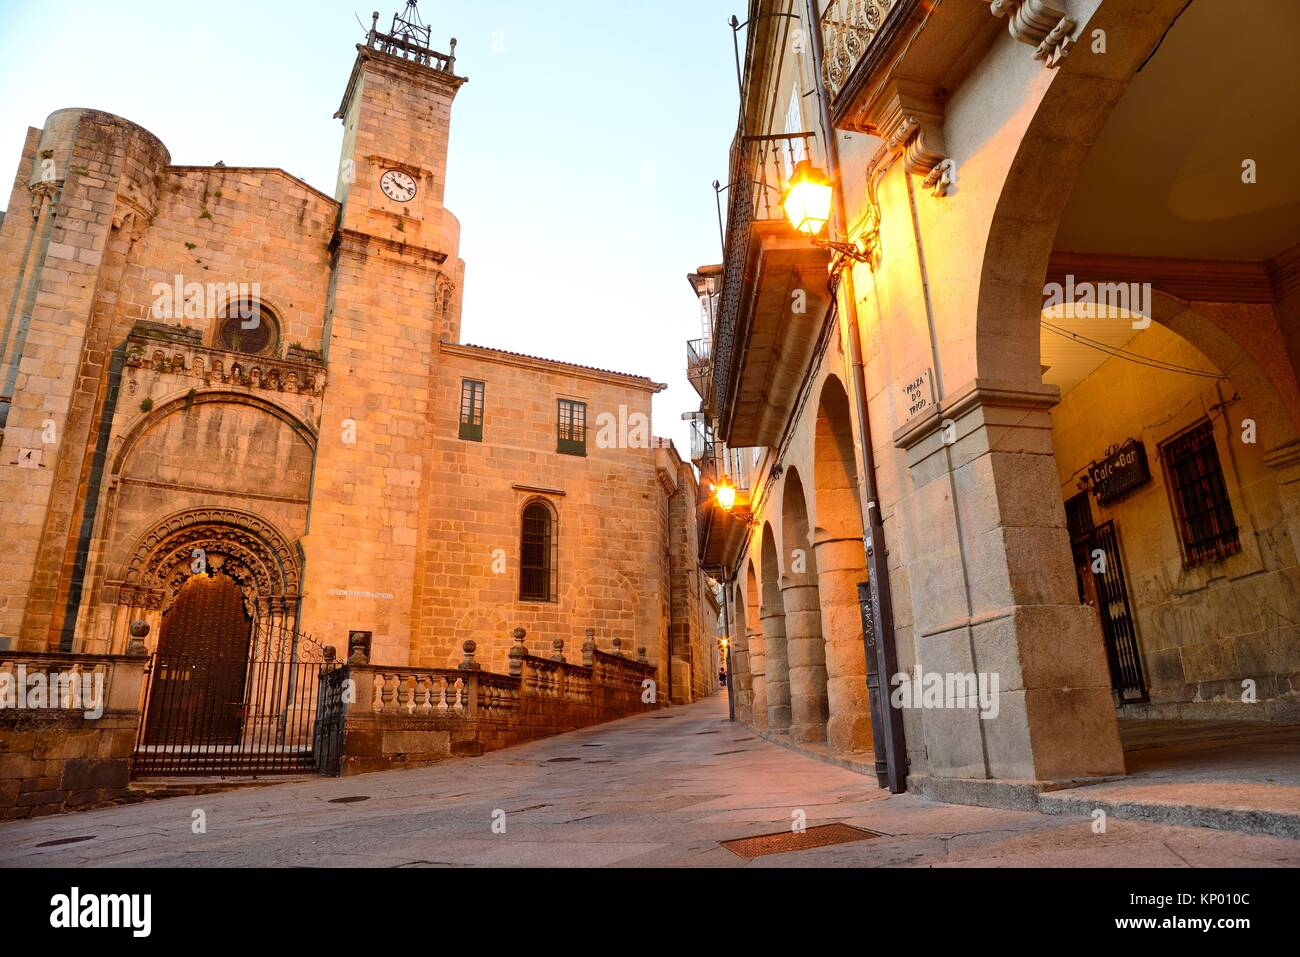 Cathedral of San Martin of Orense from Trigo square, Orense, Spain - Stock Image